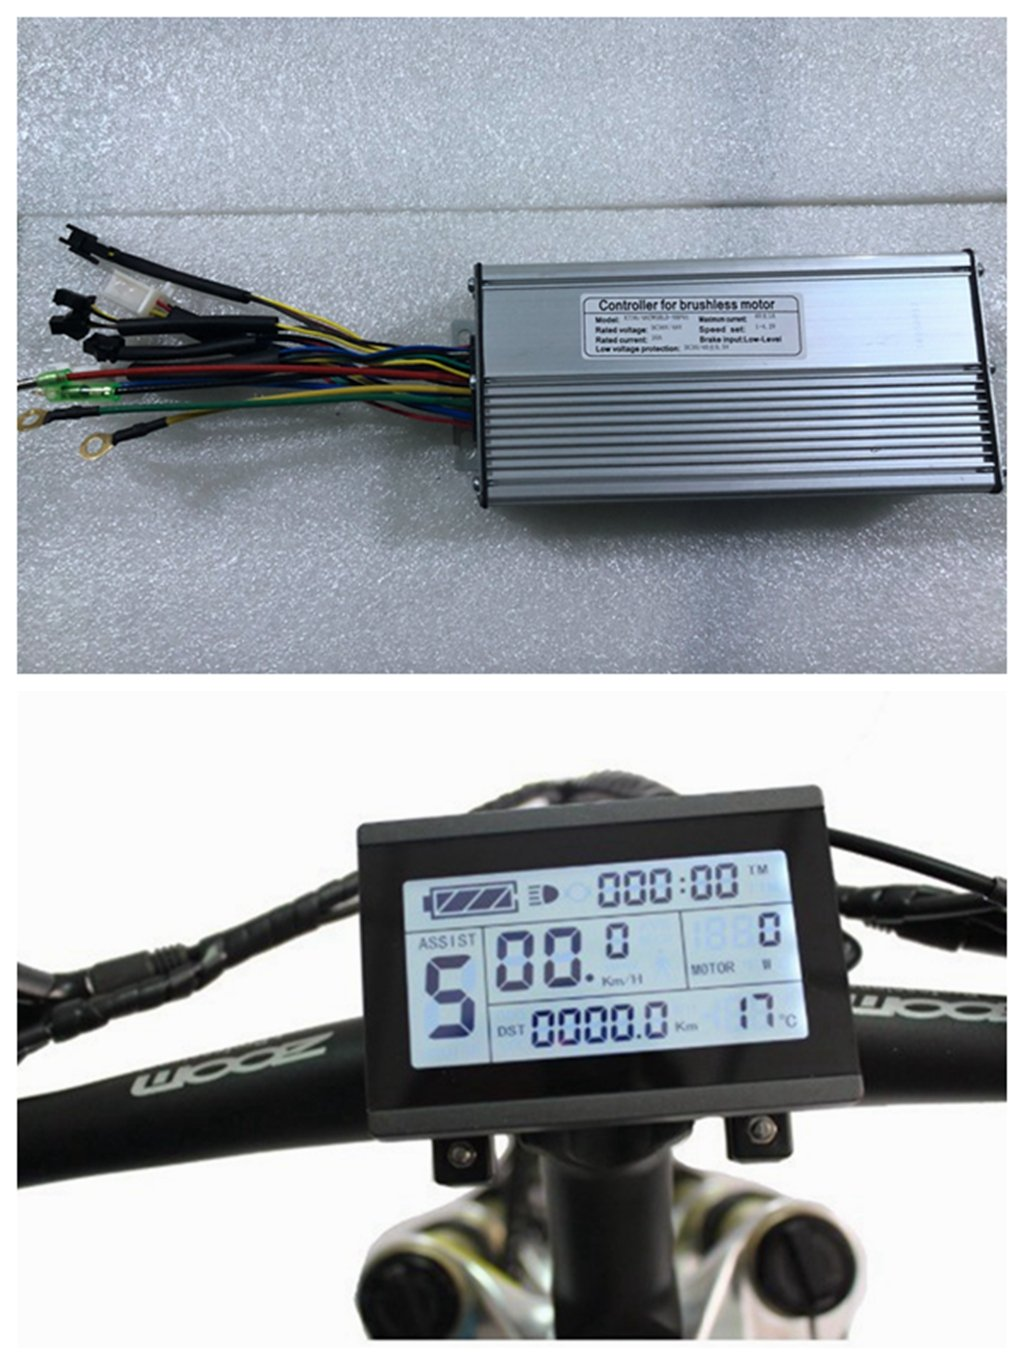 NBPower 36V/48V 1500W 40A Brushless DC Motor Controller Ebike Controller +KT-LCD3 Display One Set,Used for 1500W-2000W Ebike Kit.